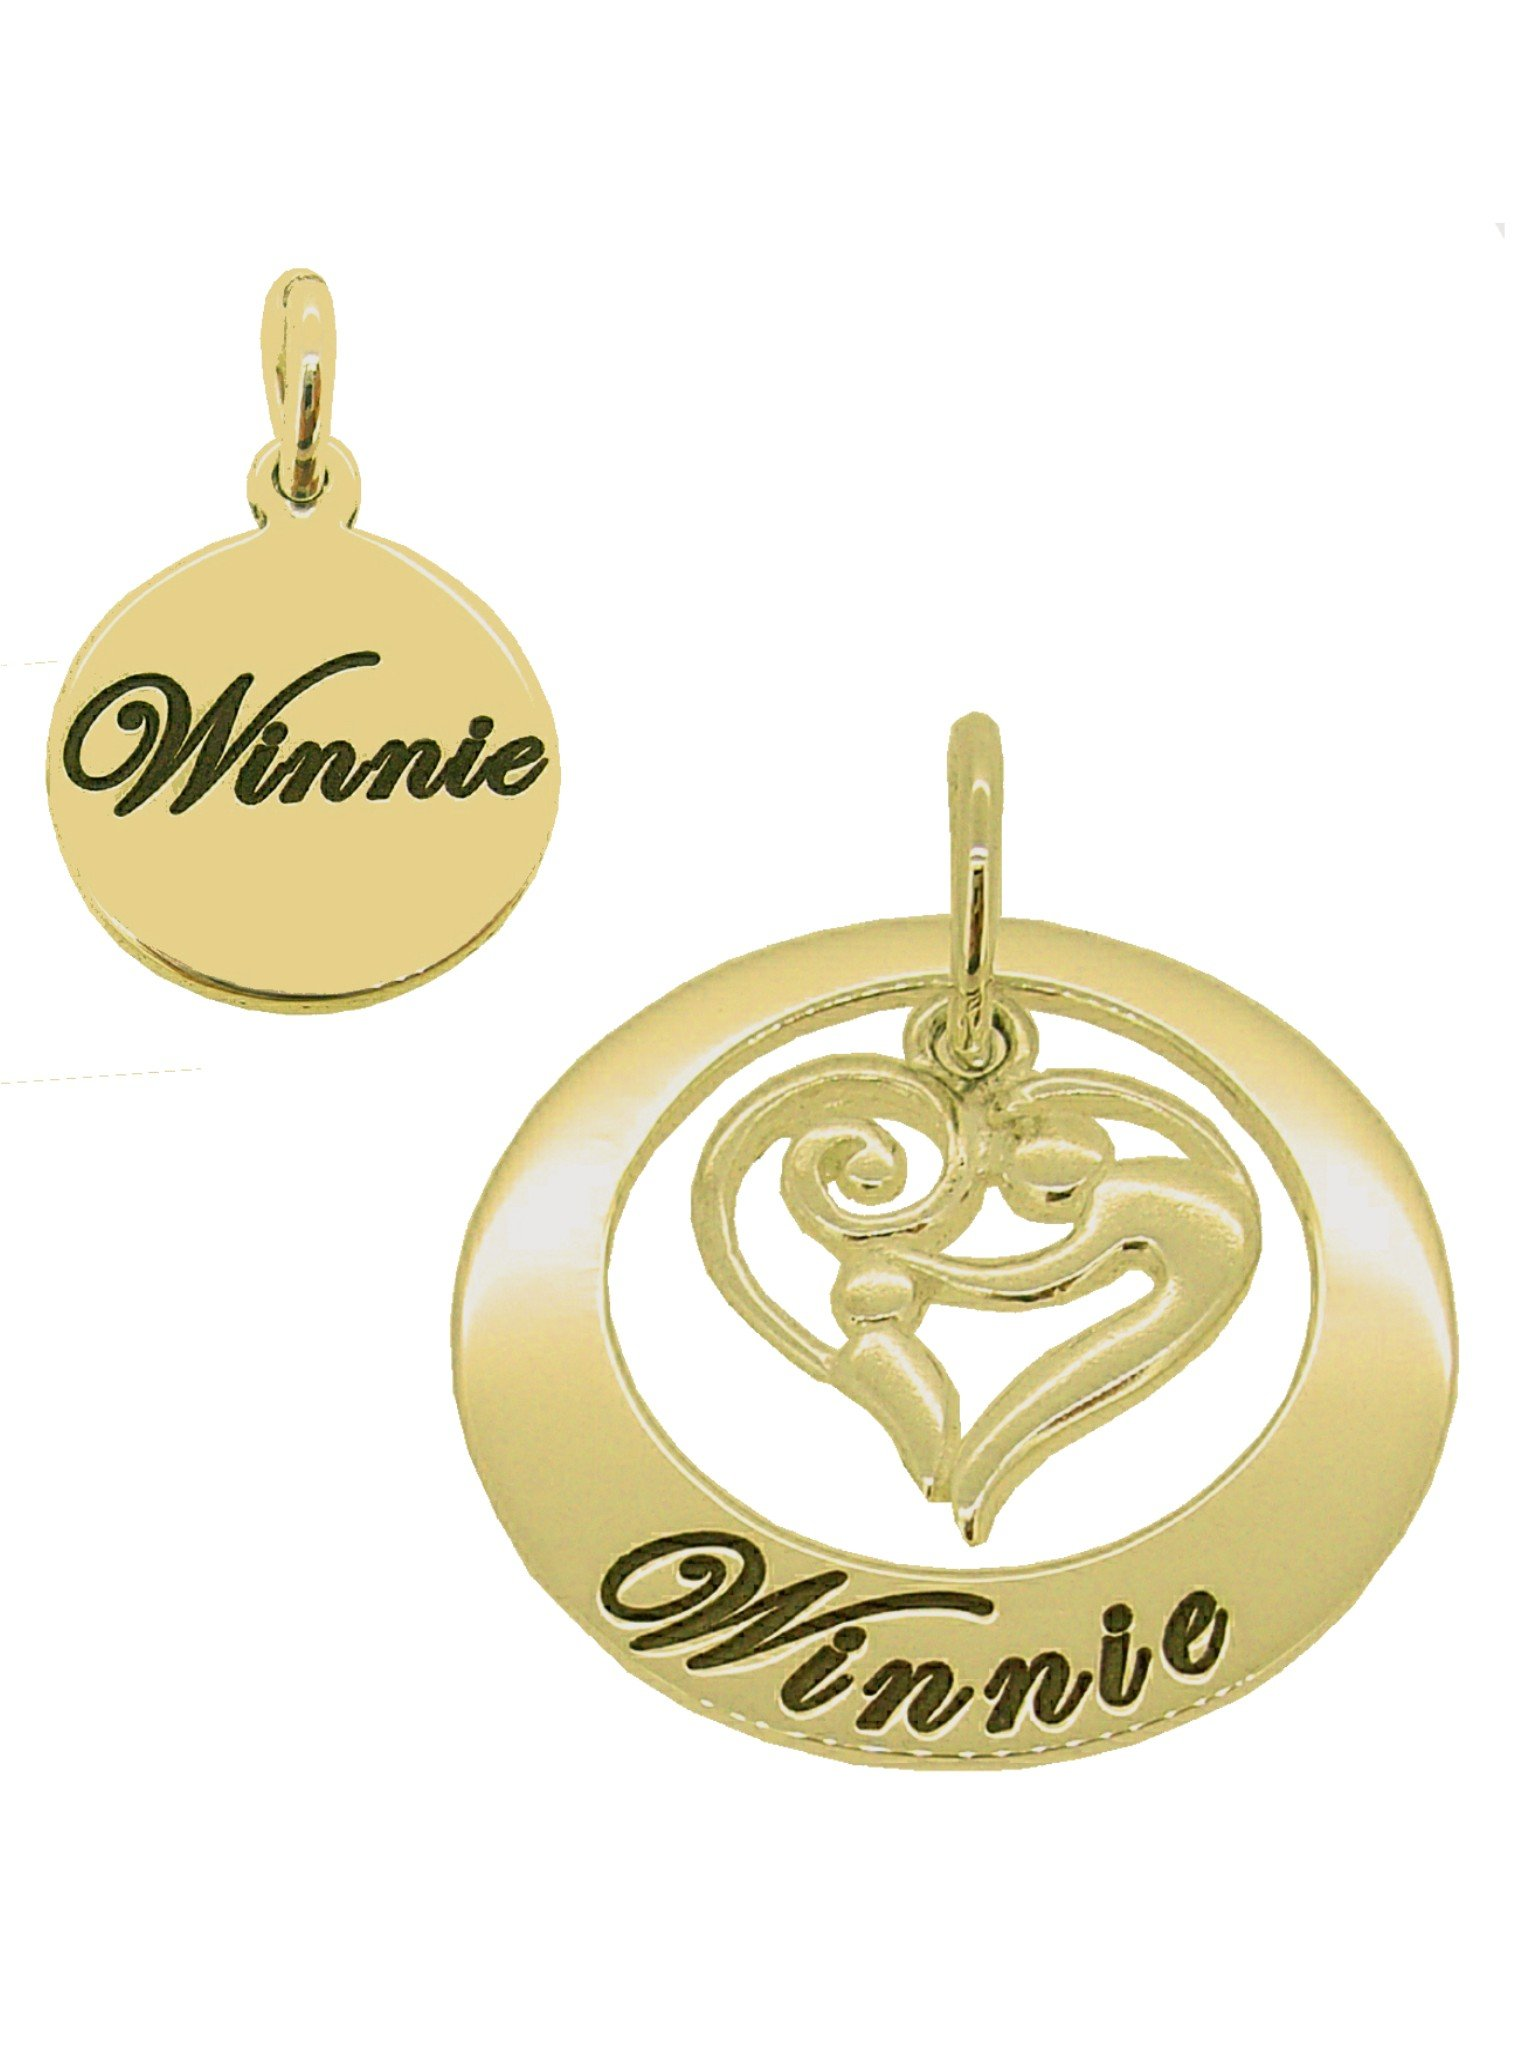 Mother and baby name circle of life personalised pendants in 9ct mother and baby name circle of life personalised pendants in 9ct gold aloadofball Gallery